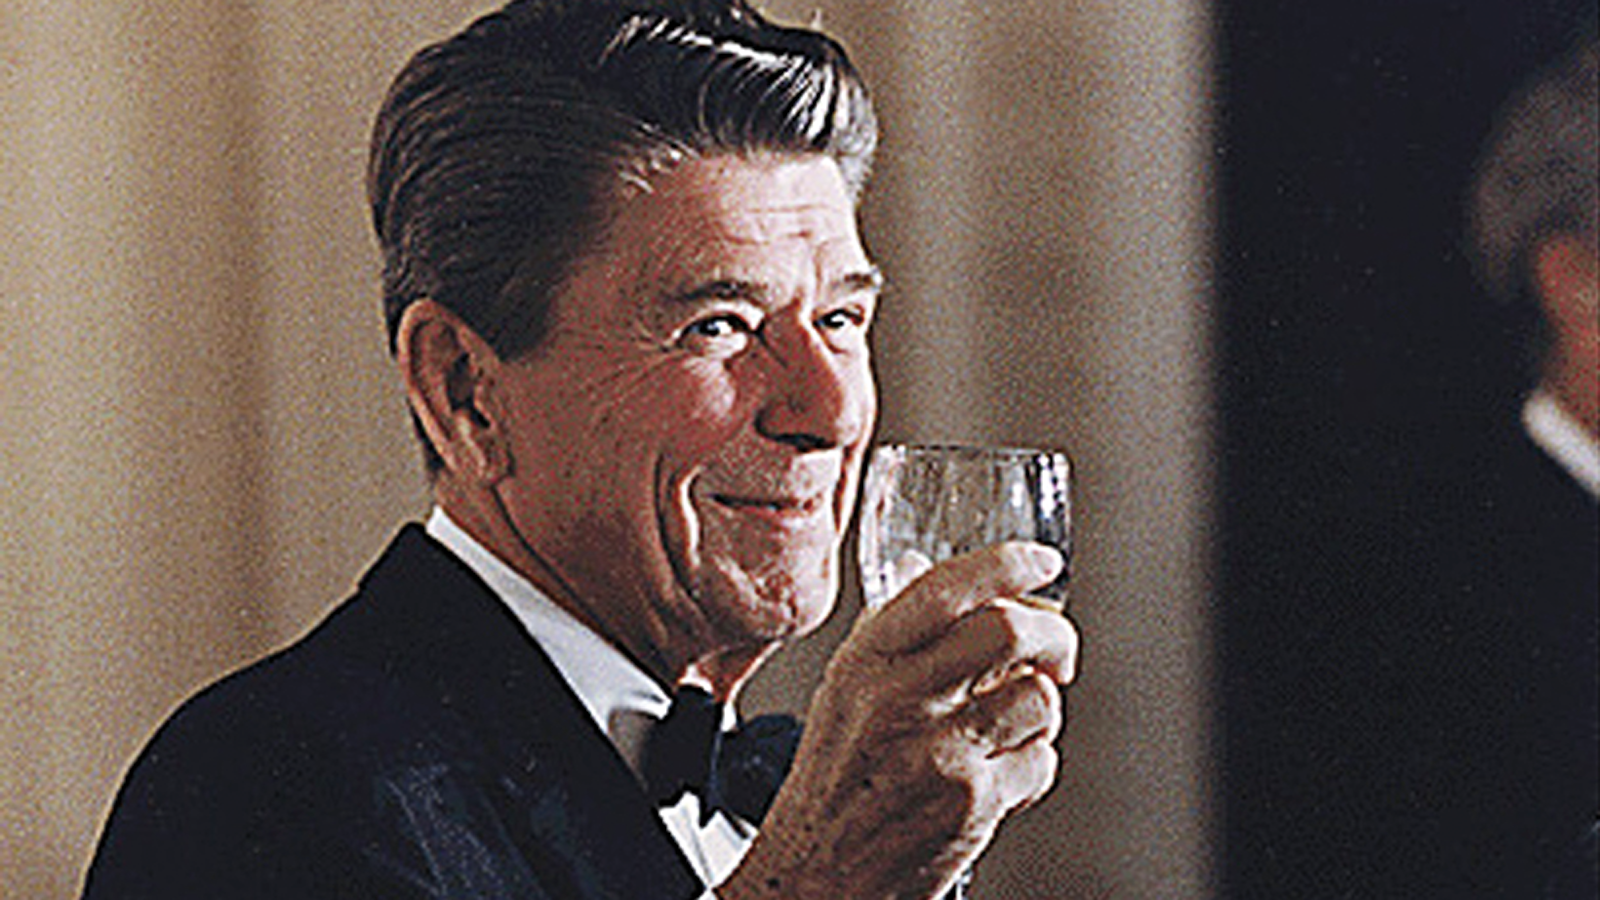 Ronald Reagan supported California wines in the 1980s.